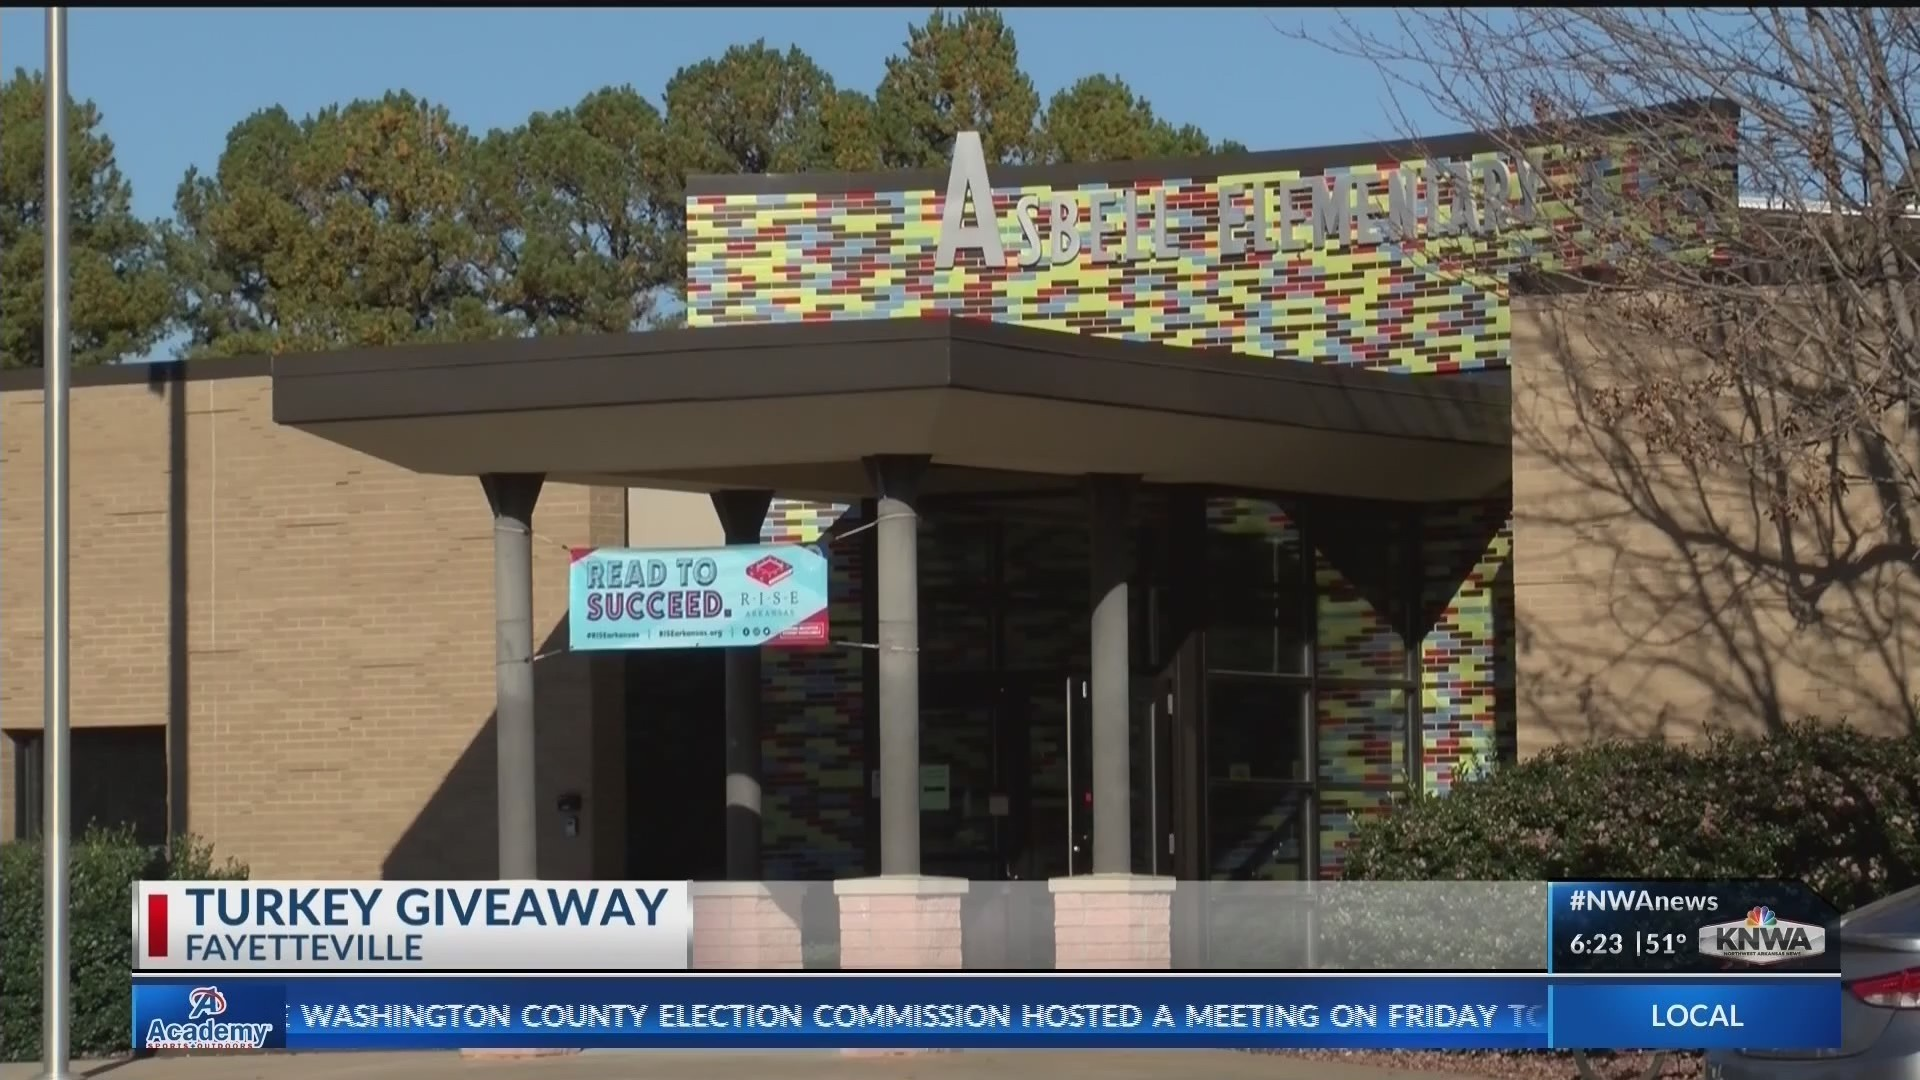 Free_Turkeys_Given_to_Asbell_Elementary__0_20181117005831